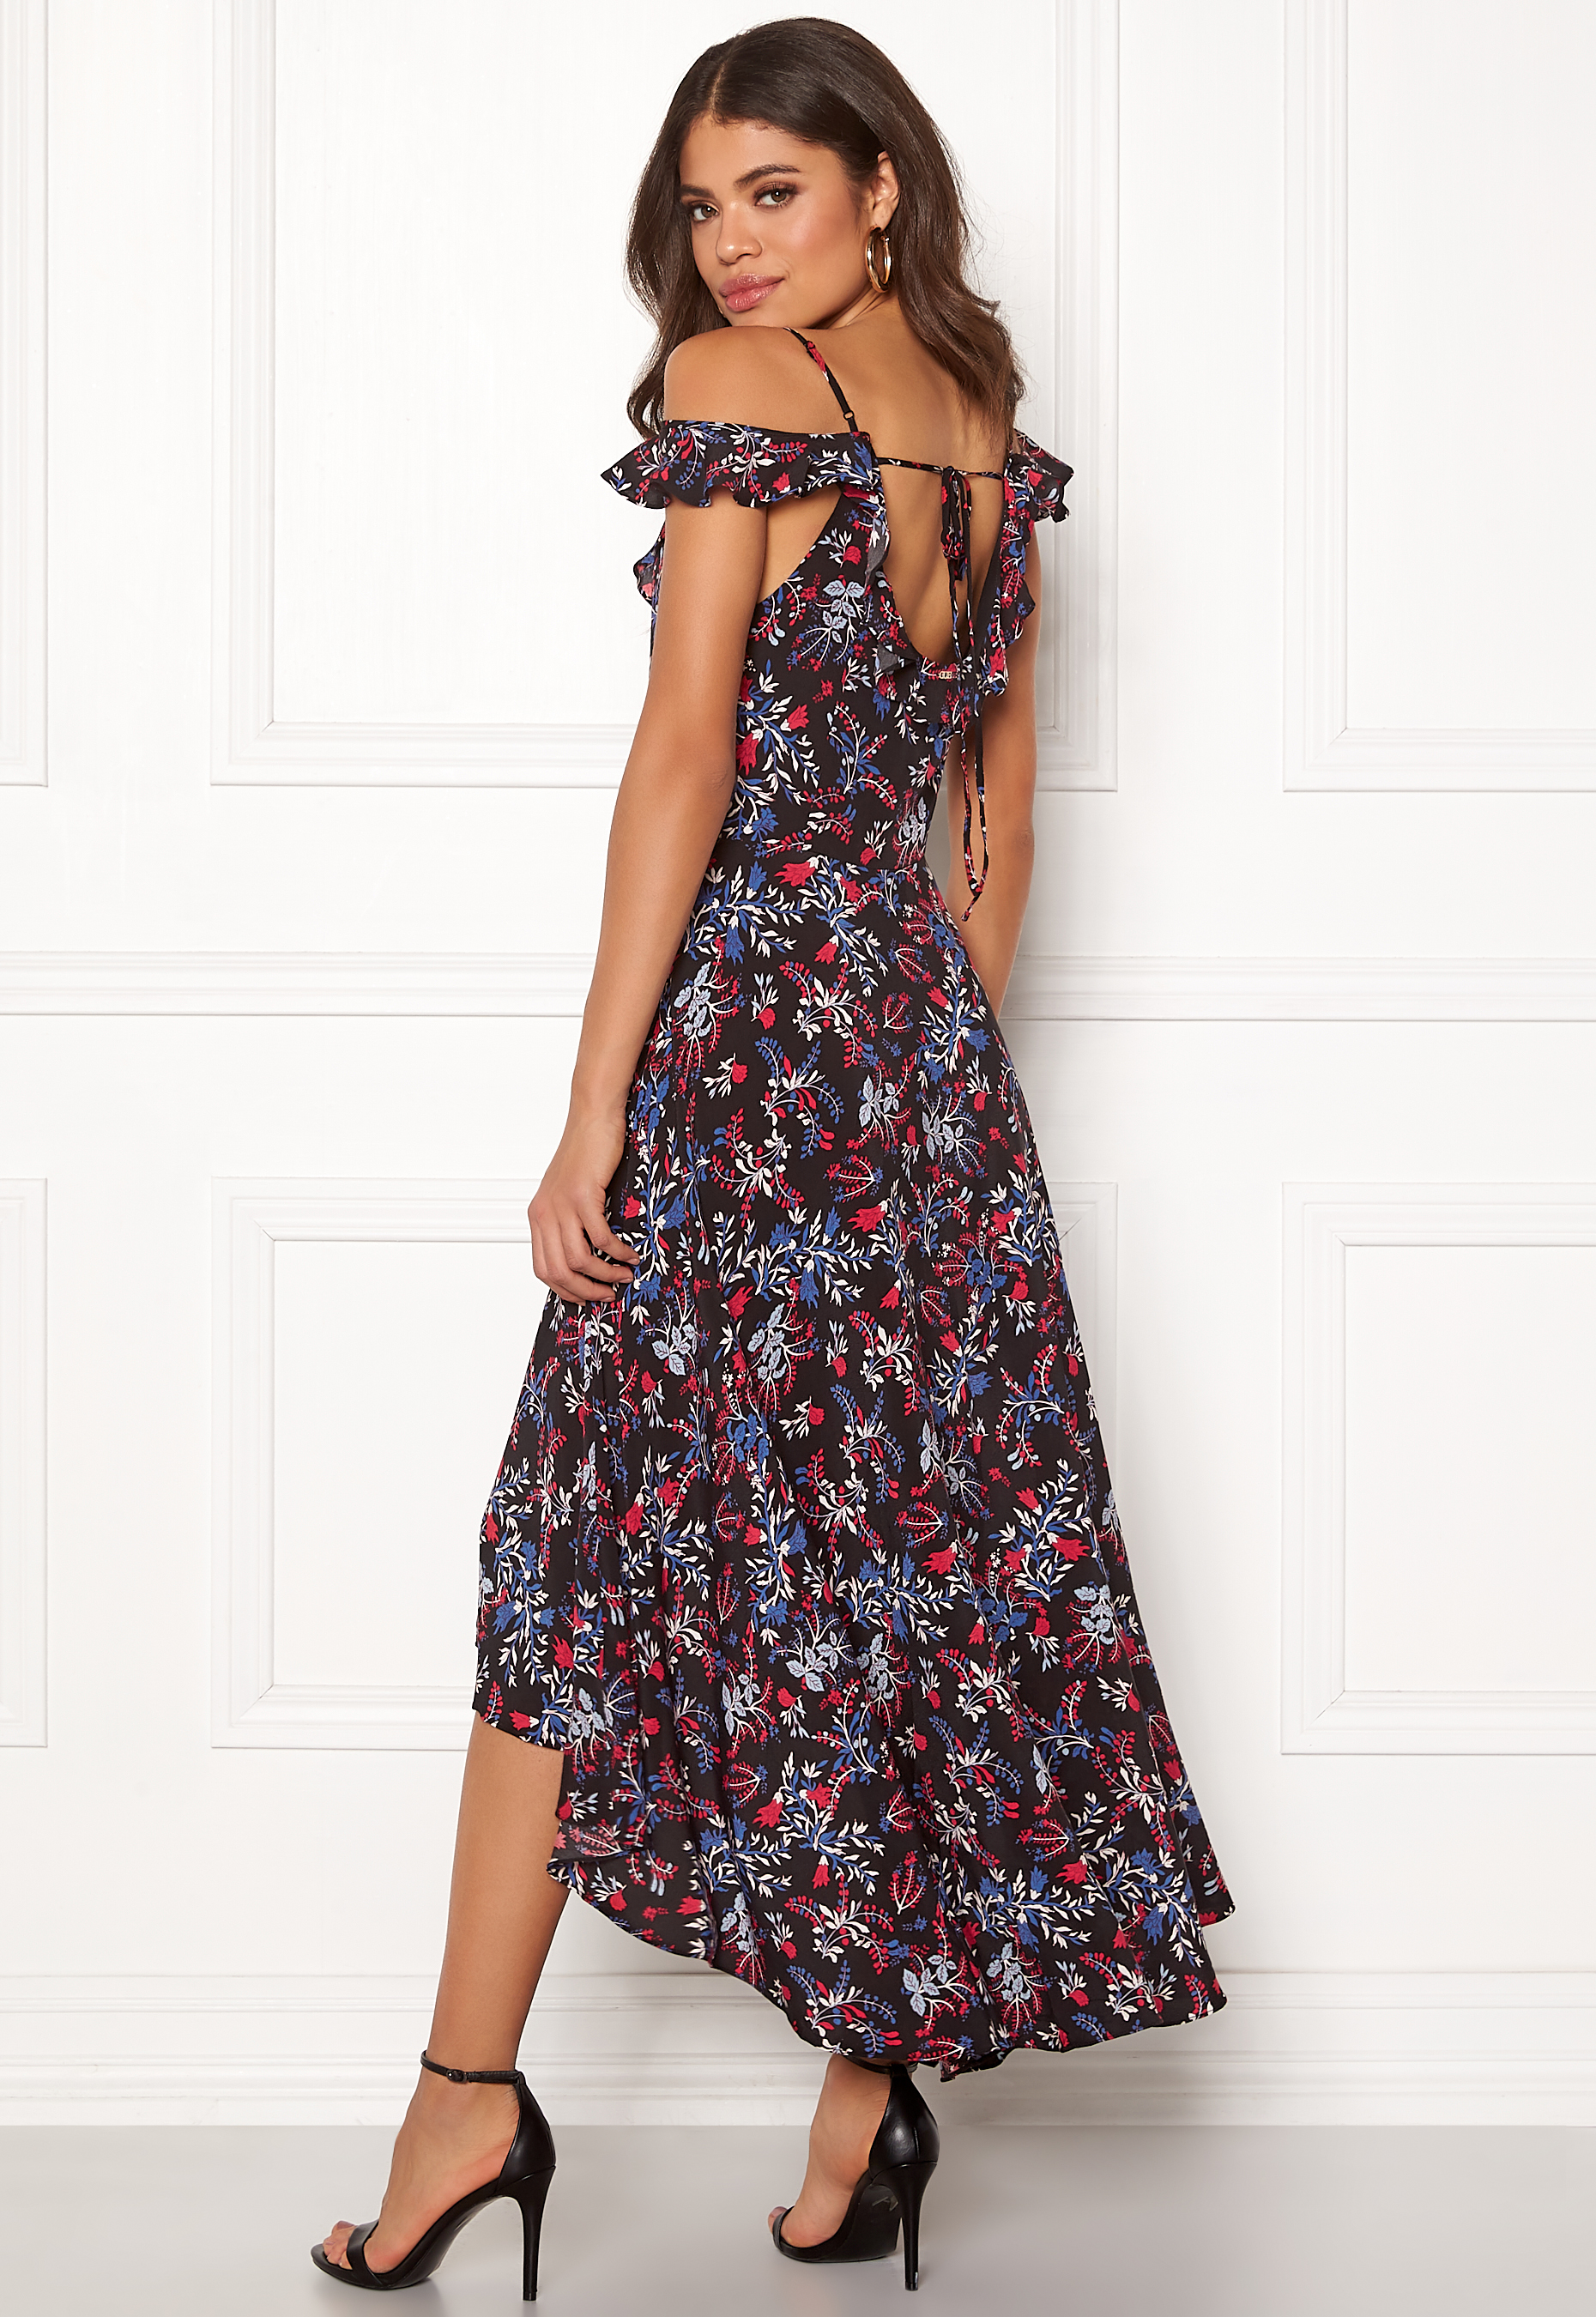 Flowers Bubbleroom Dress Bora Guess Graphic nPwO0k